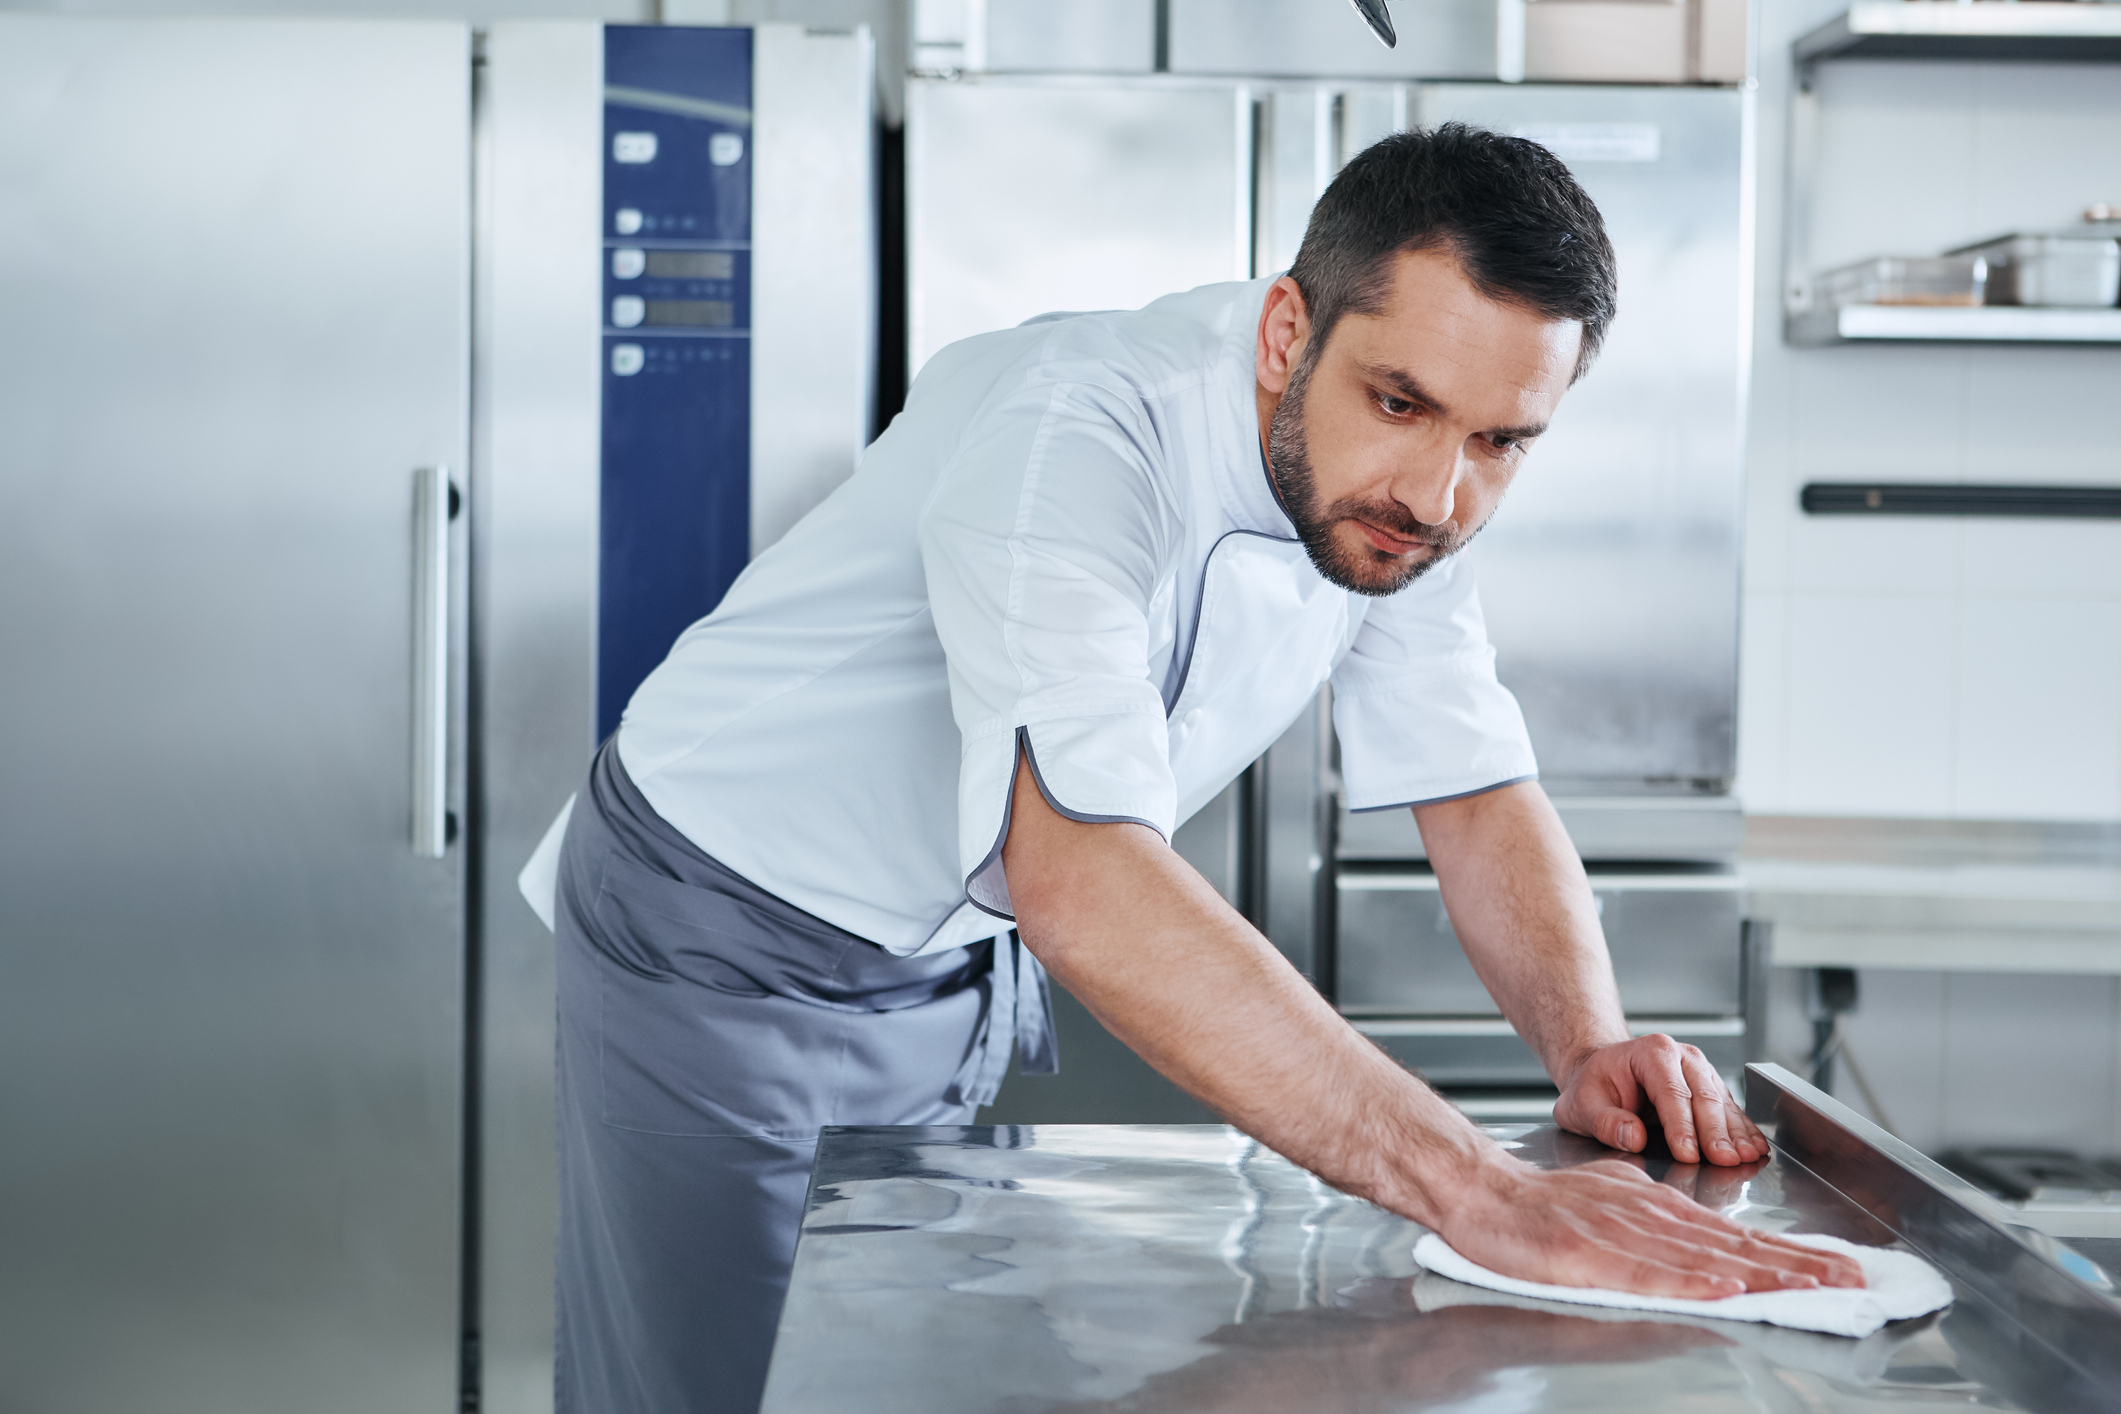 Bearded man prepares the surface for cooking in the kitchen